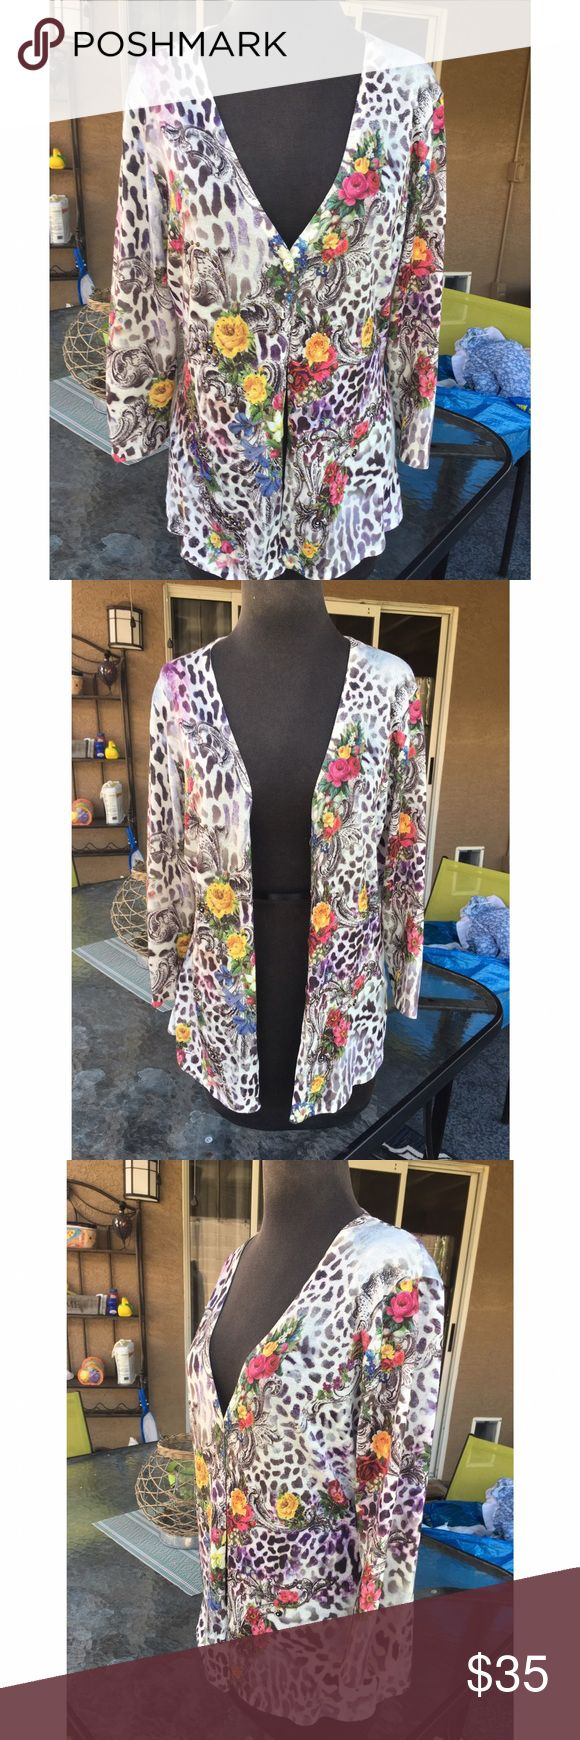 Alberto Makali chita cardigan Beutiful cheetah cardigan . Super soft and in great condition. 🌸bundle to save, offers welcomed Alberto Makali Sweaters Cardigans